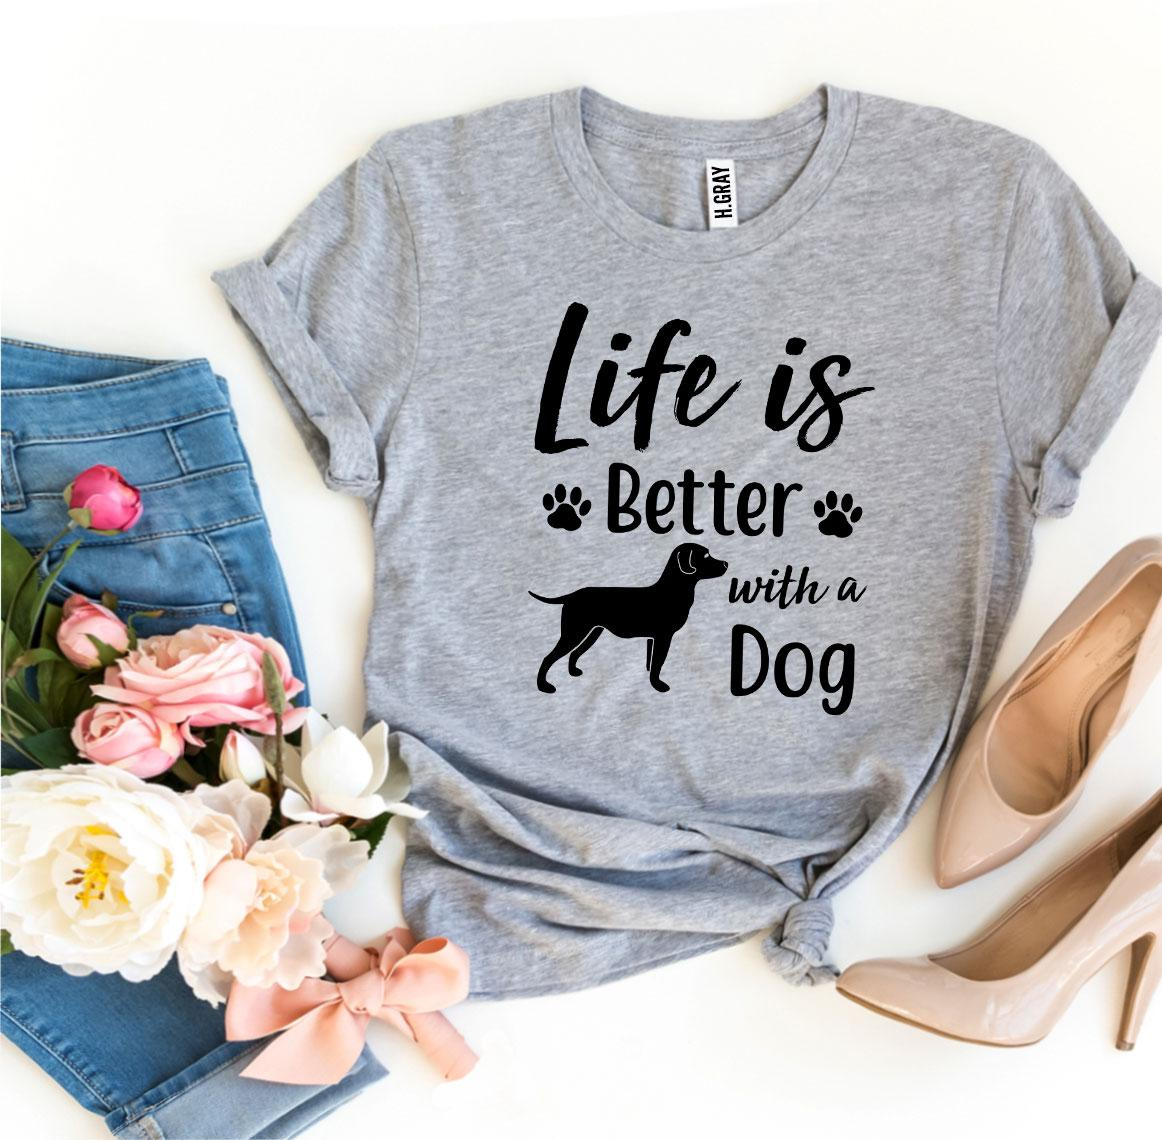 Life Is Better With a Dog T-shirt